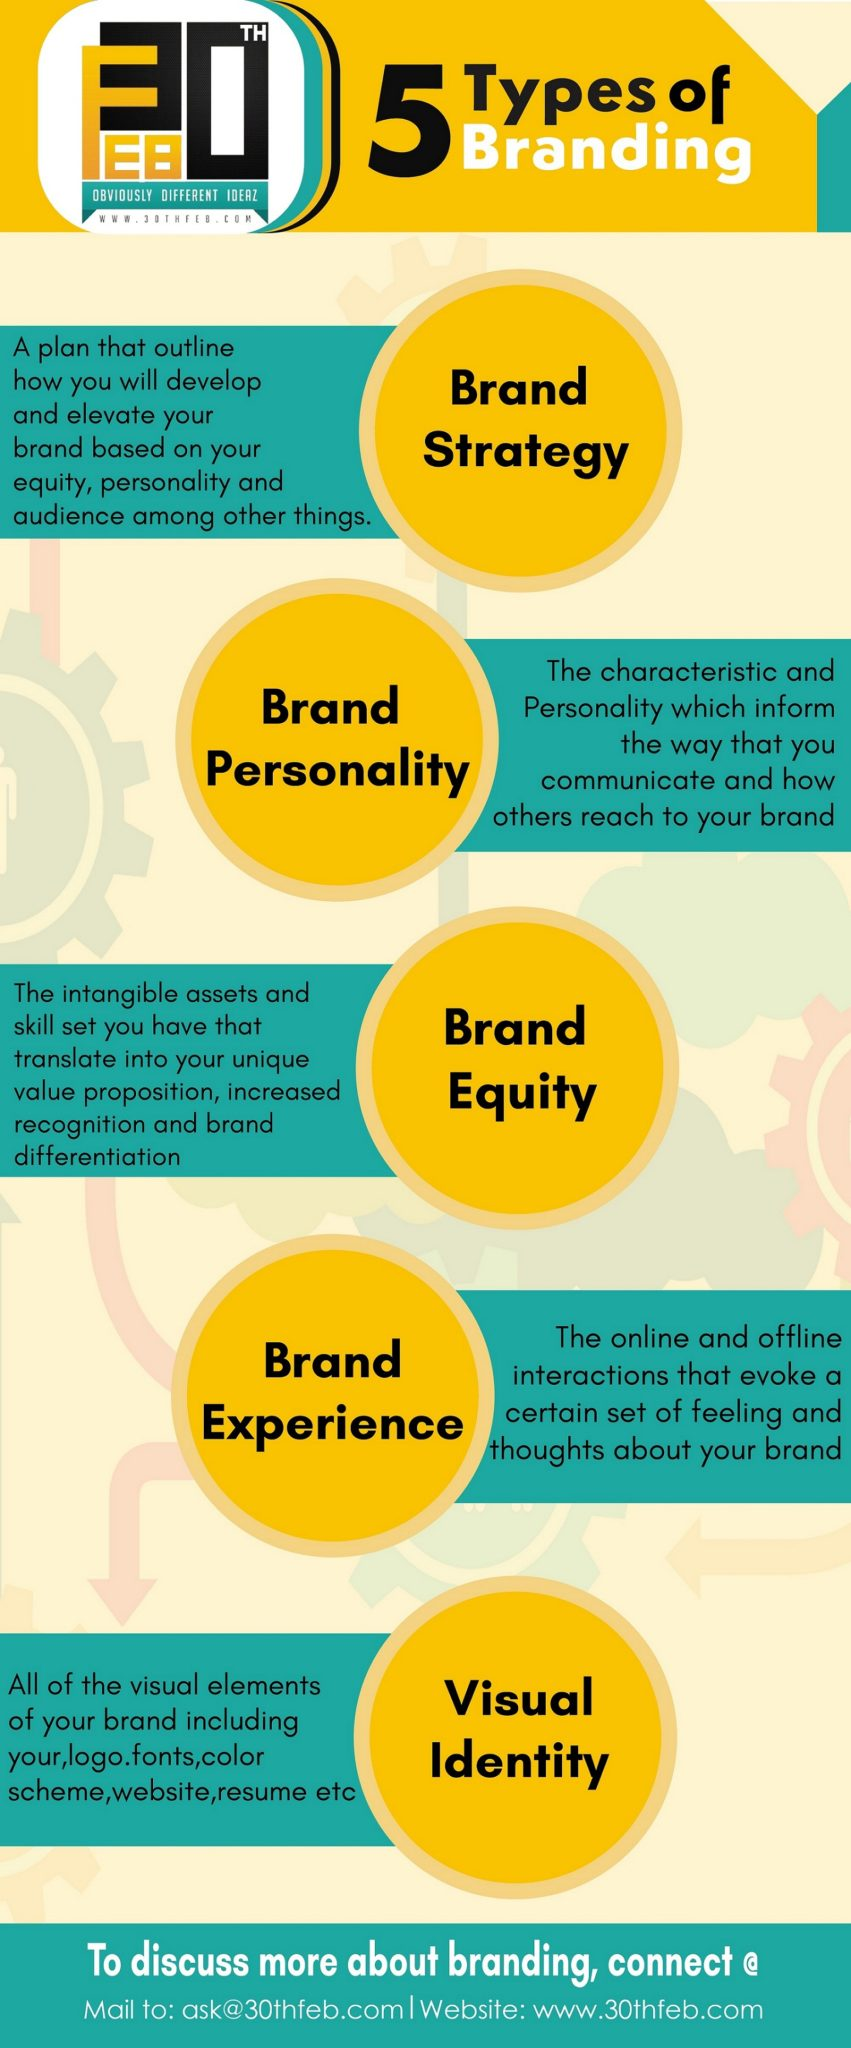 different types of branding and the Brand decisions, simply put, are decisions that one makes about a certain brand you are building or promoting because benefits and attributes can be shared between competitors, the challenge really is to create a deep emotional connection between the brand and the market.